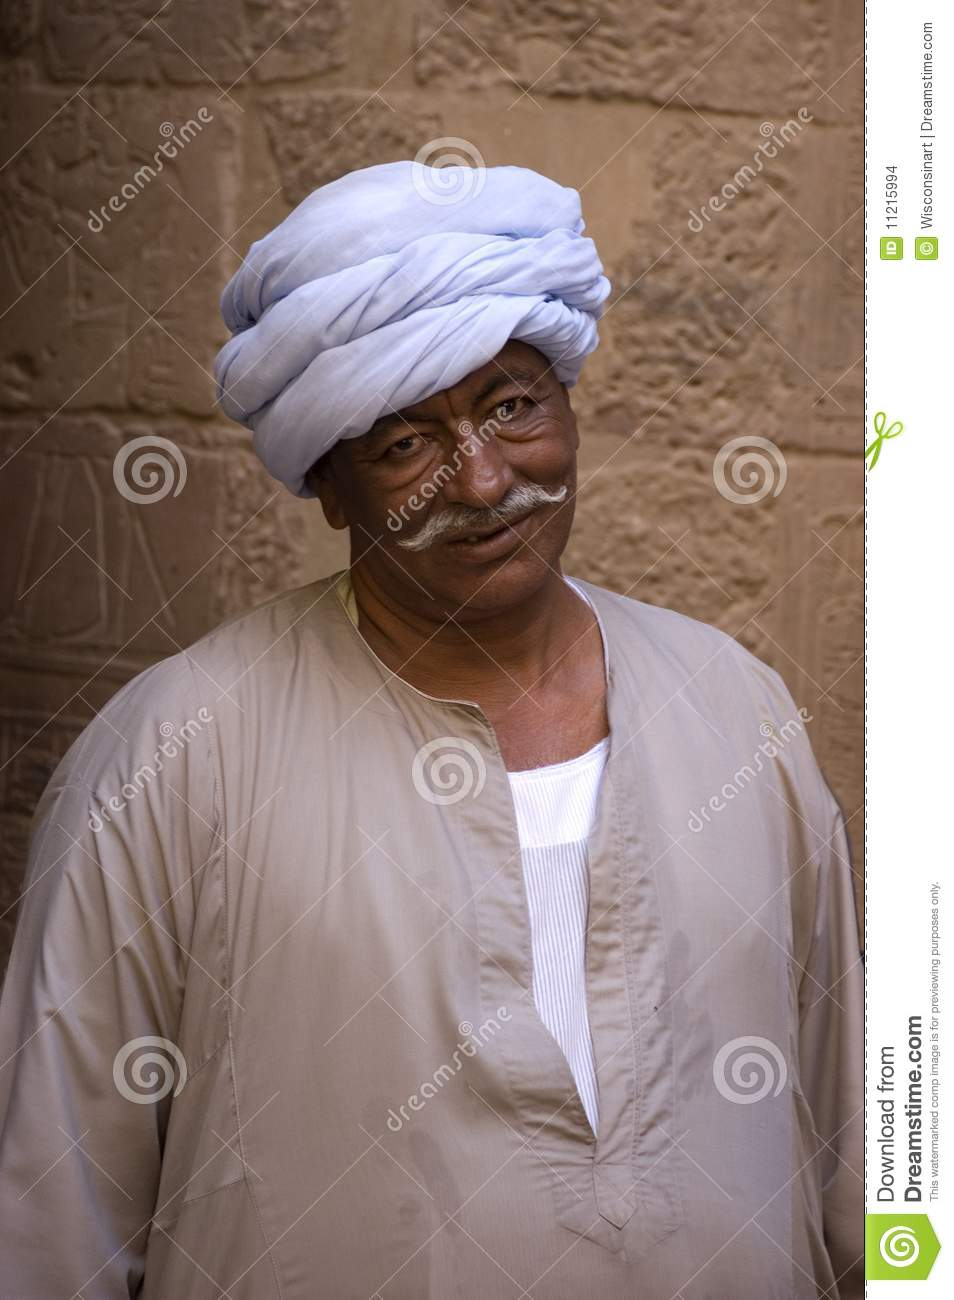 Egyptian Dressed in Traditional Arab Clothing